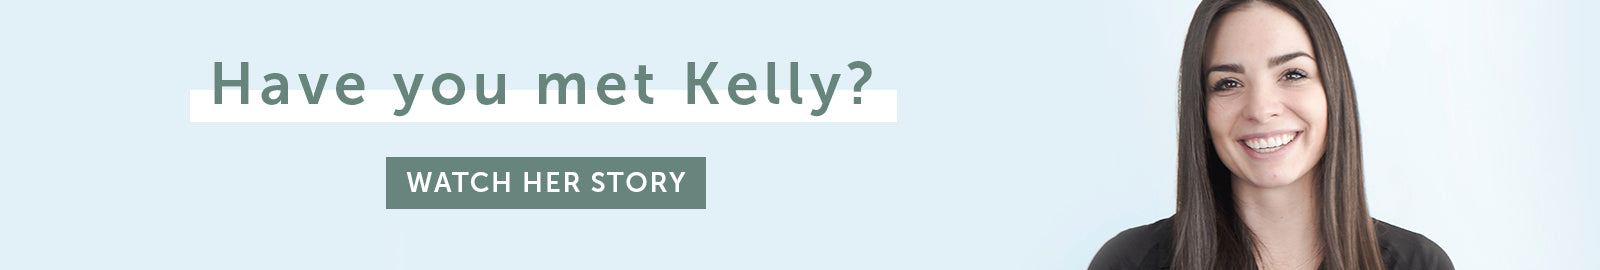 Have you met Kelly? Watch her story.